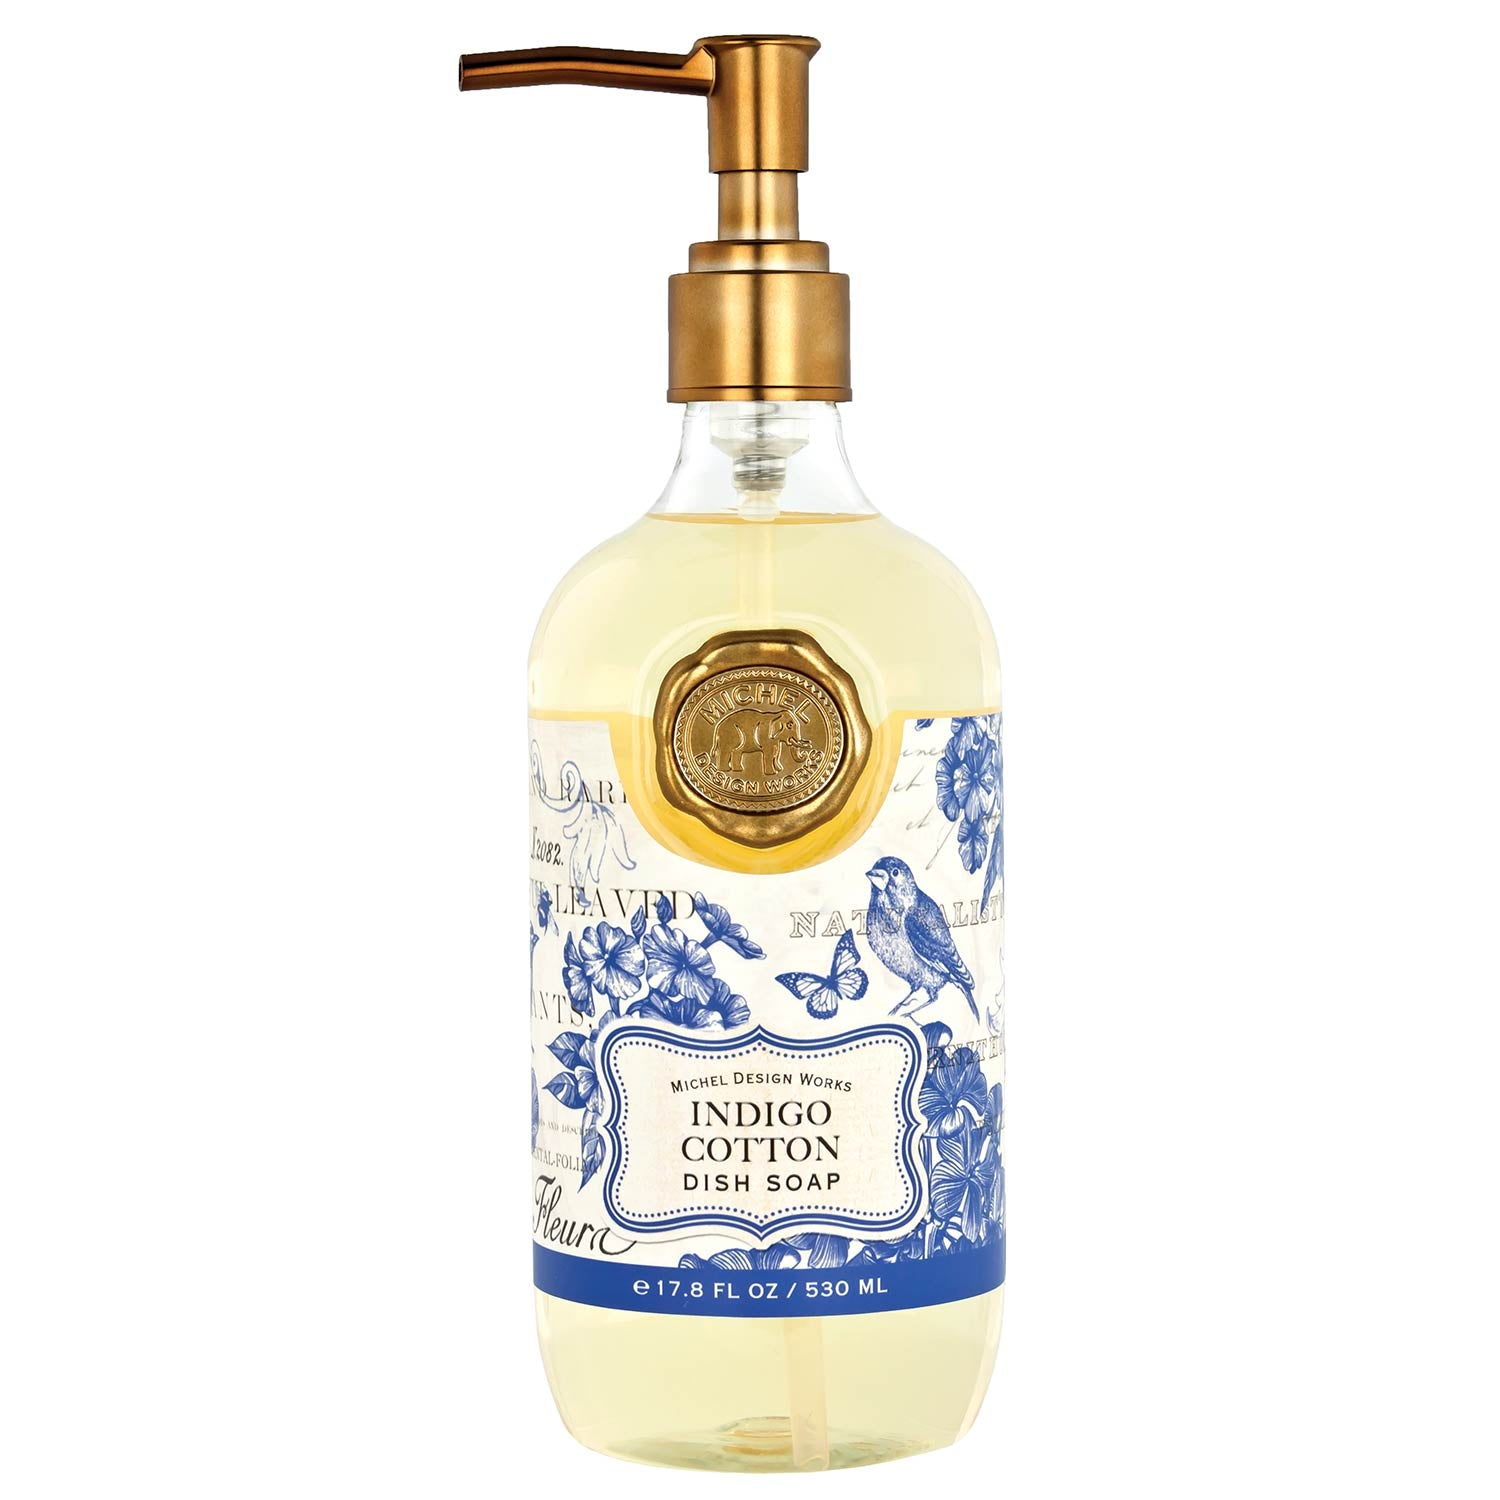 Michel Design Works Indigo Cotton Dish Soap - Putti Fine Furnishings Canada